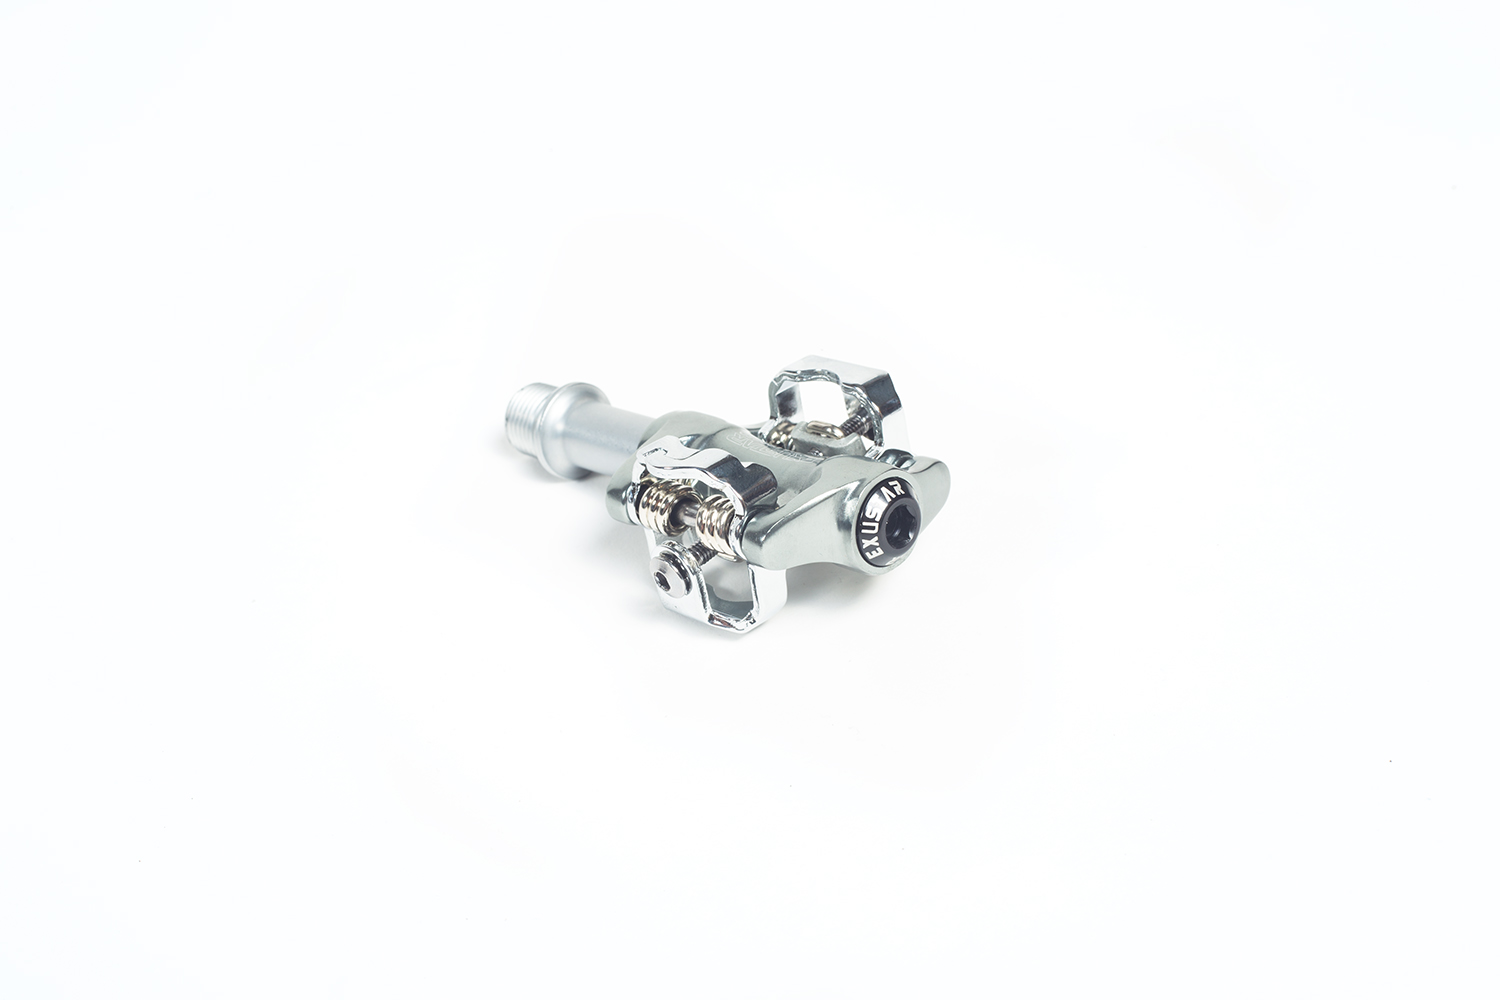 pedals-sp2-silver-3